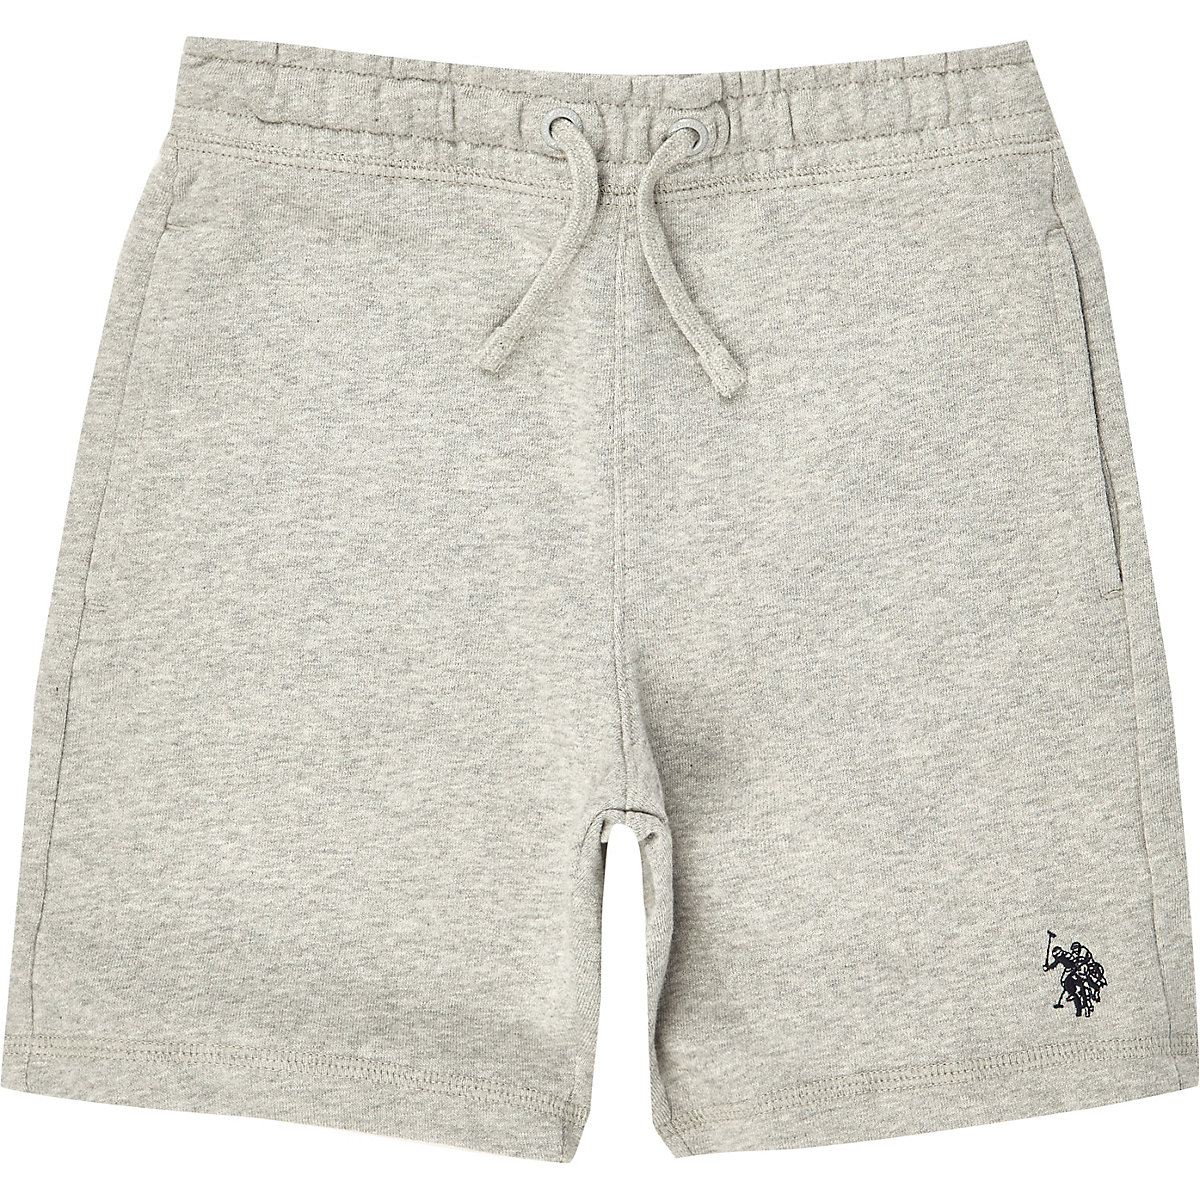 Boys Grey U S Polo Assn Jersey Shorts Jersey Shorts Shorts Boys